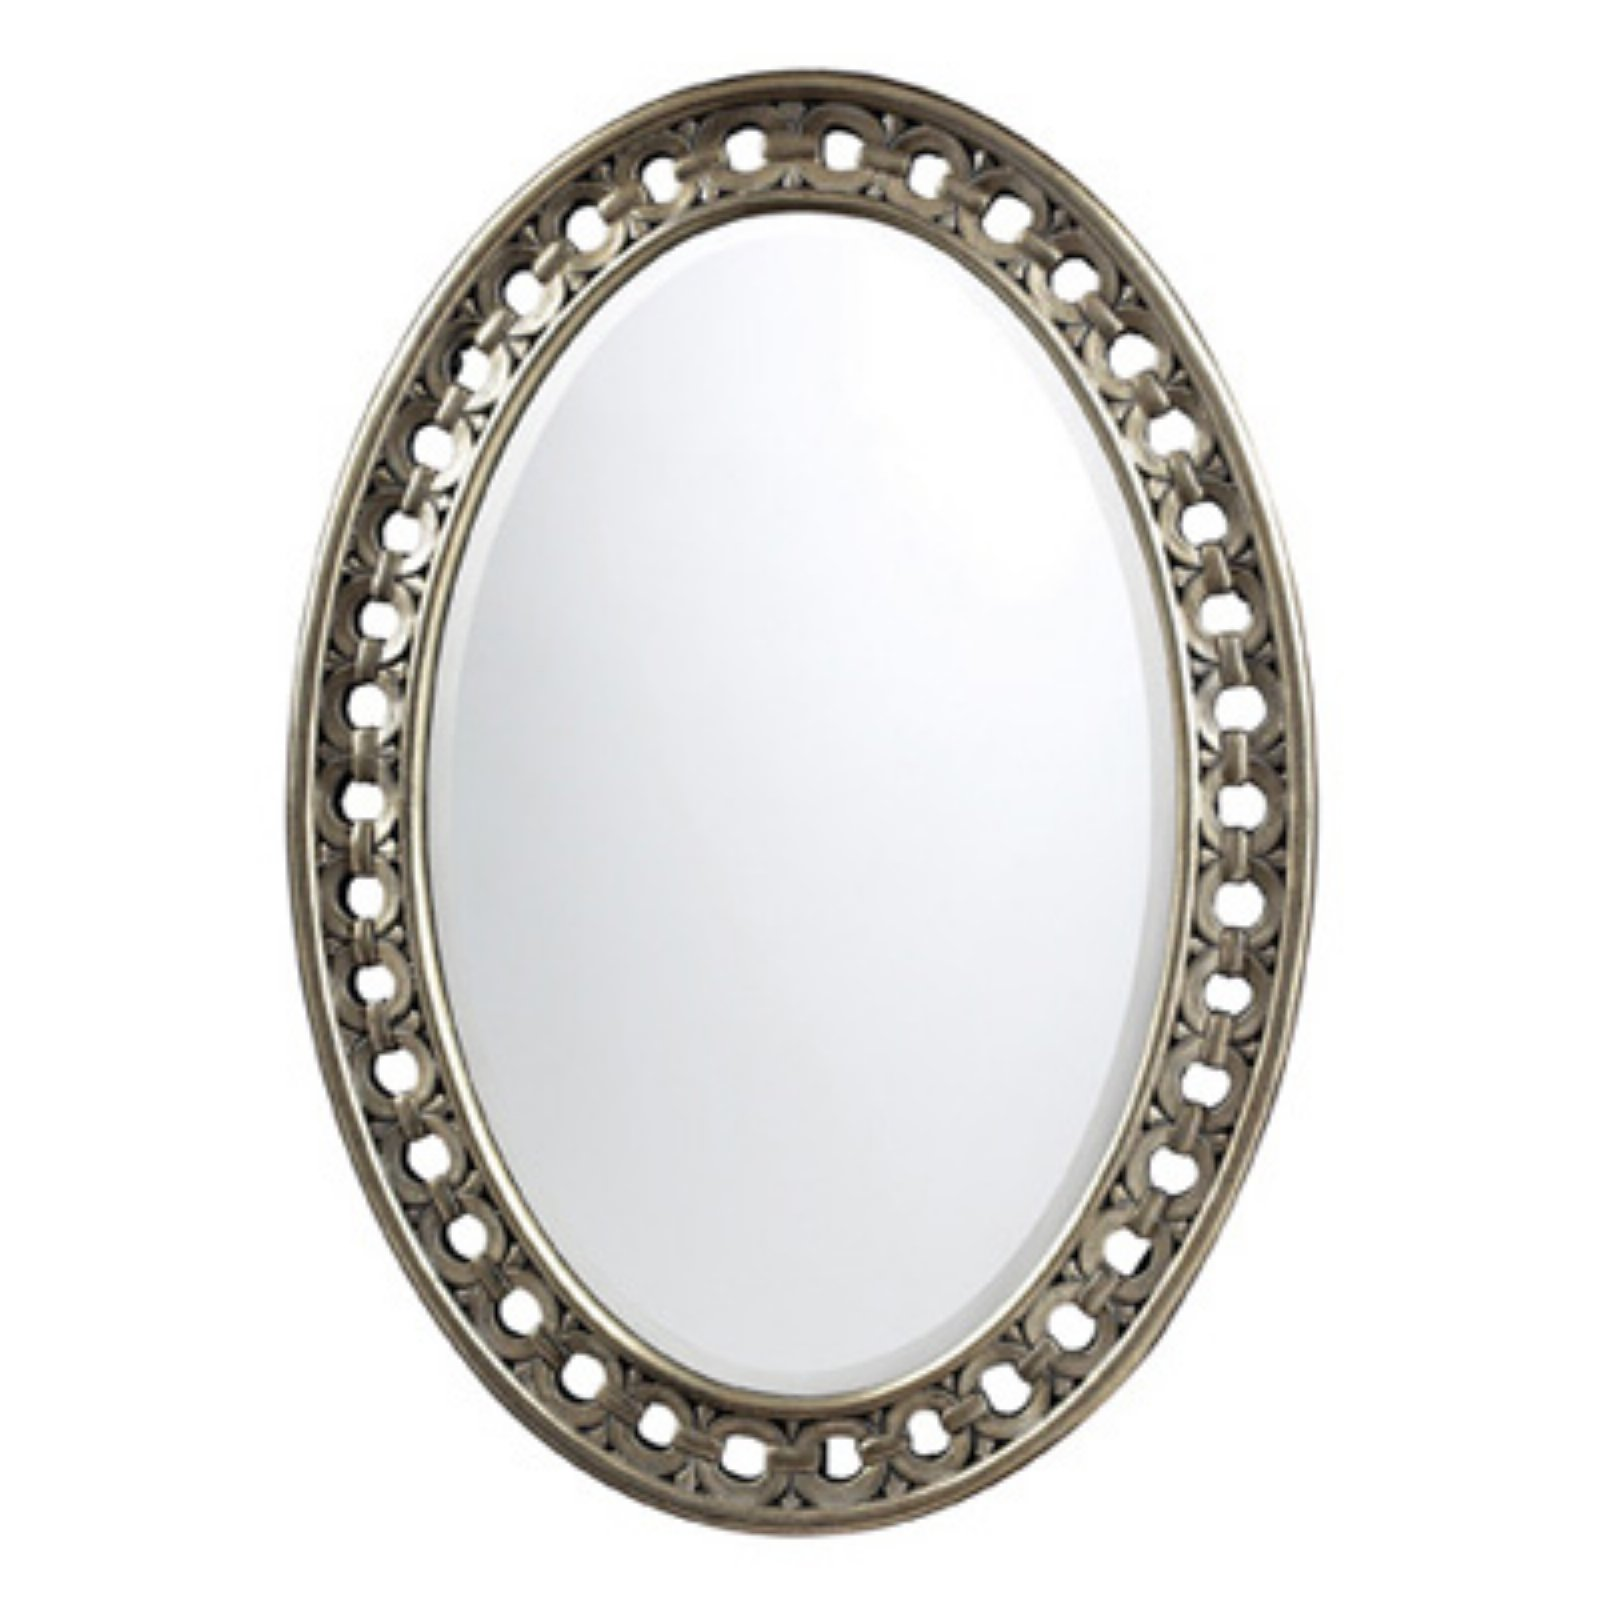 Sterling Sumner Antique Silver Wall Mirror - 24W x 34H in.